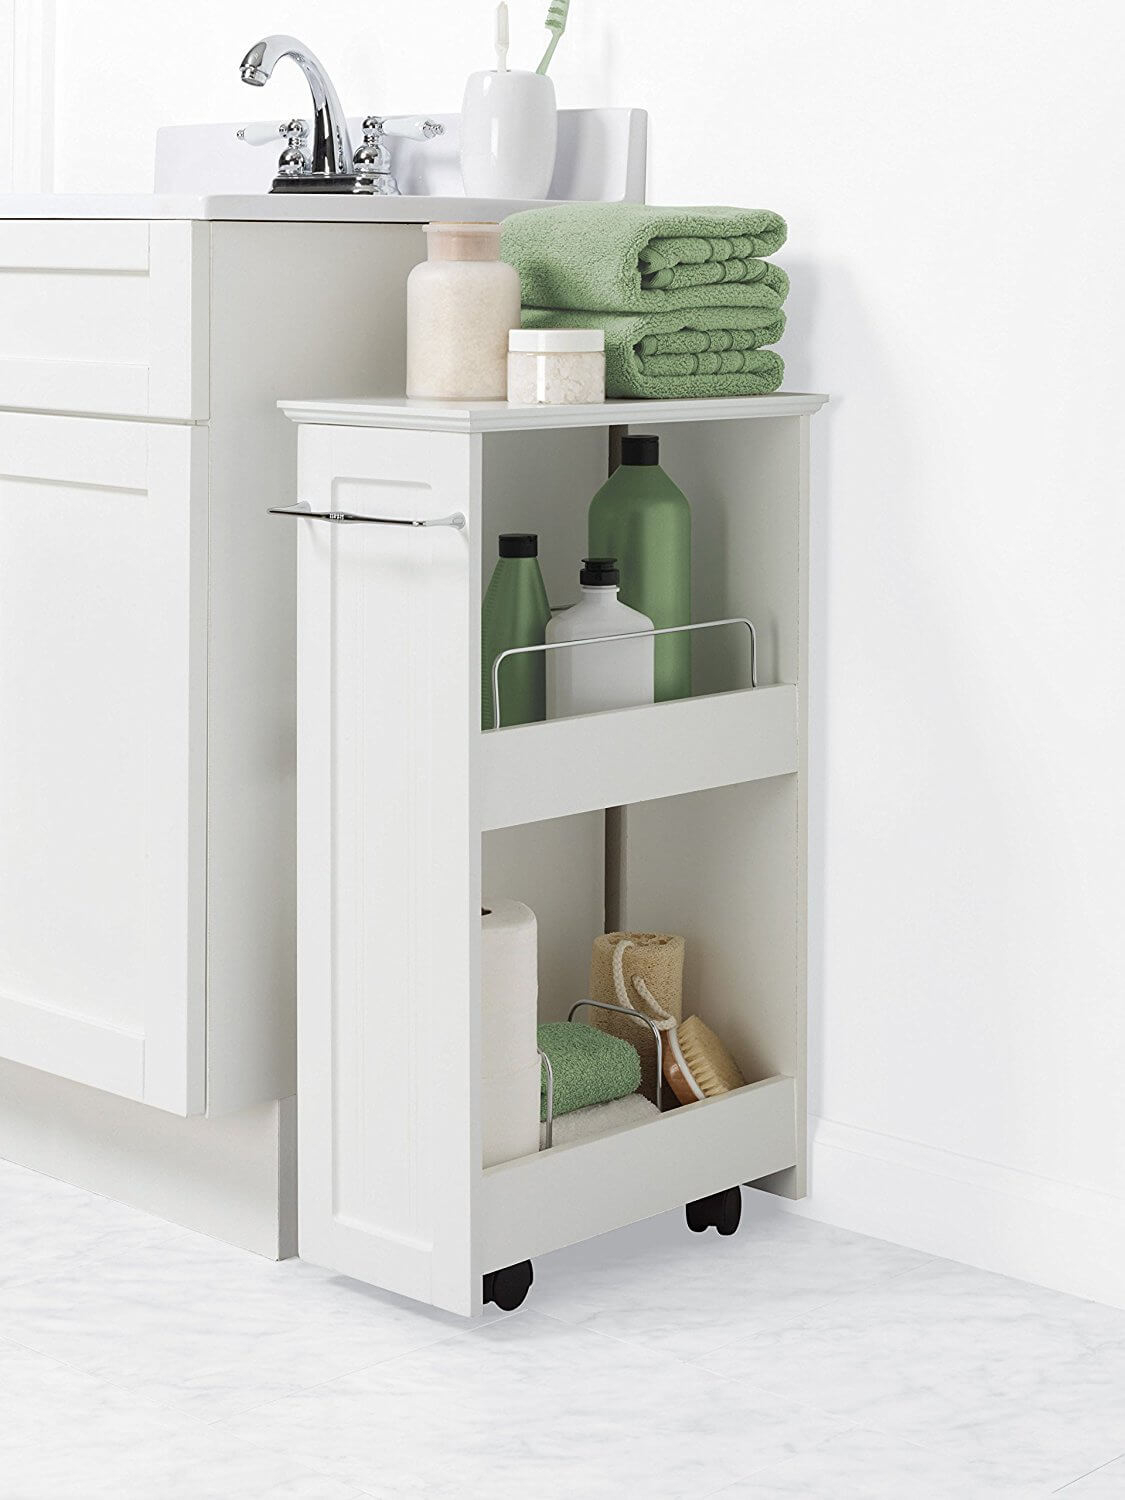 26 Best Bathroom Storage Cabinet Ideas For 2019 pertaining to measurements 1125 X 1500